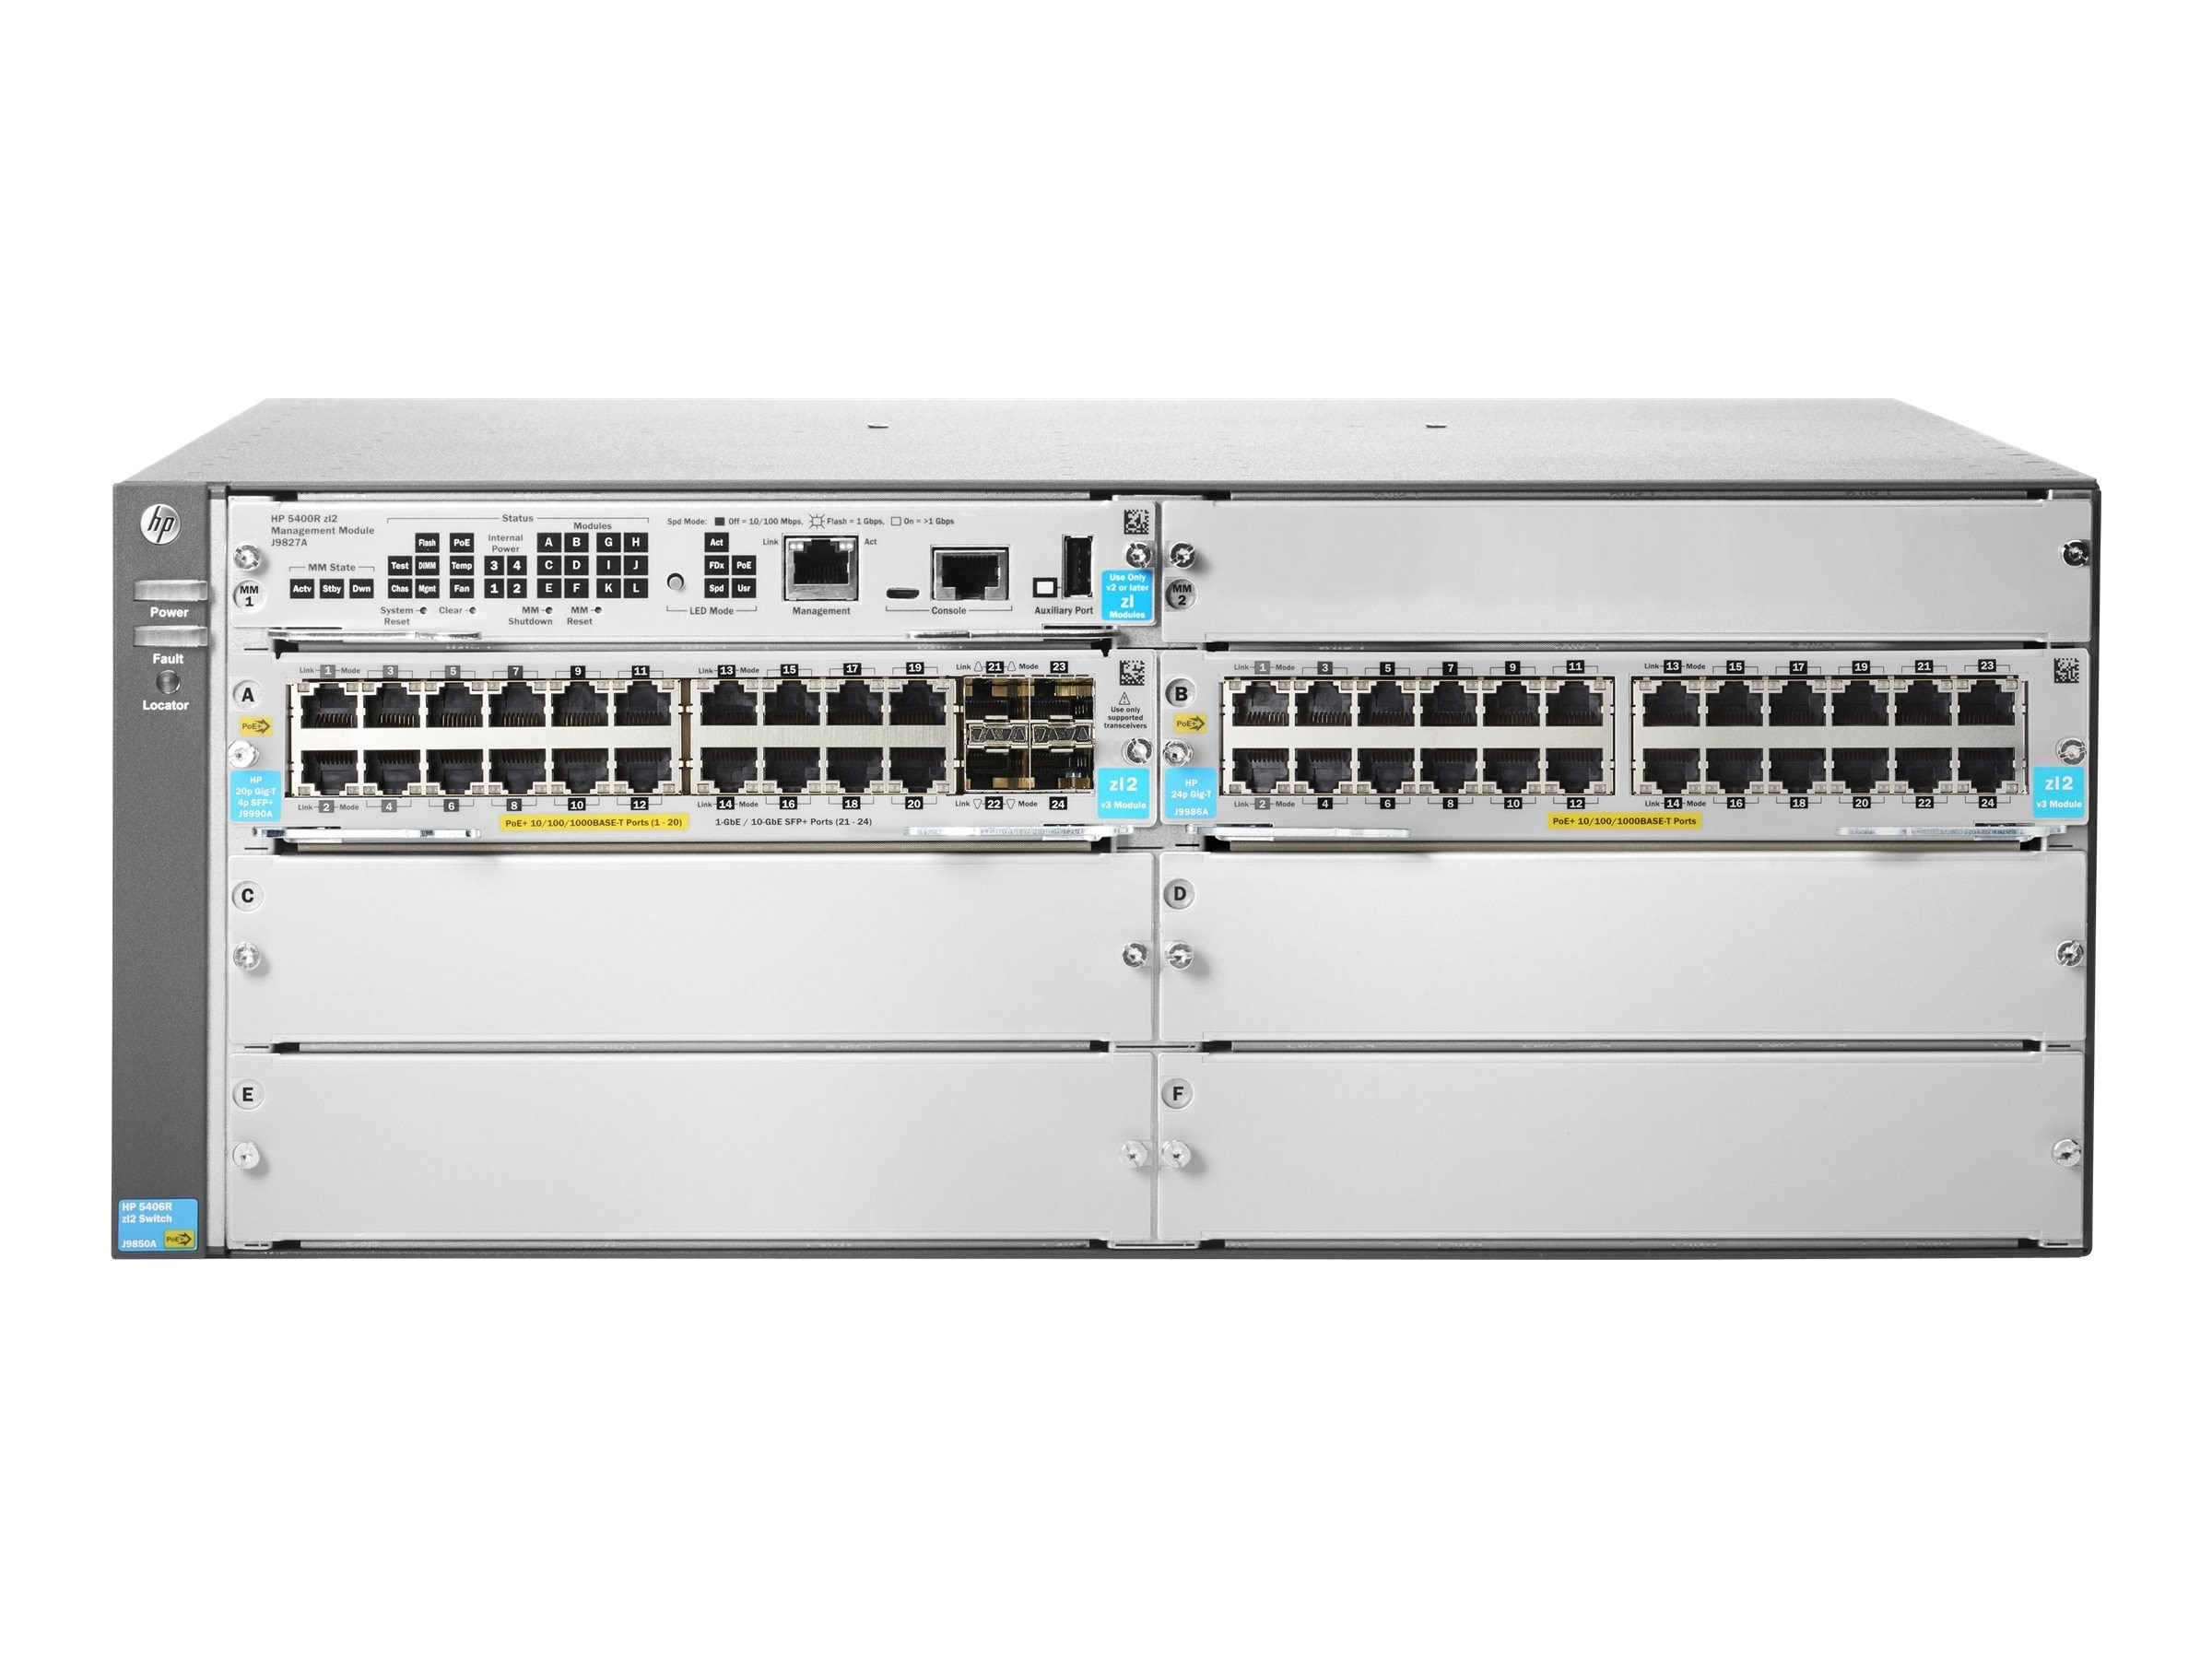 HPE 5406R 44xGT POE+ 4xSFP+ V3 ZL2 Switch